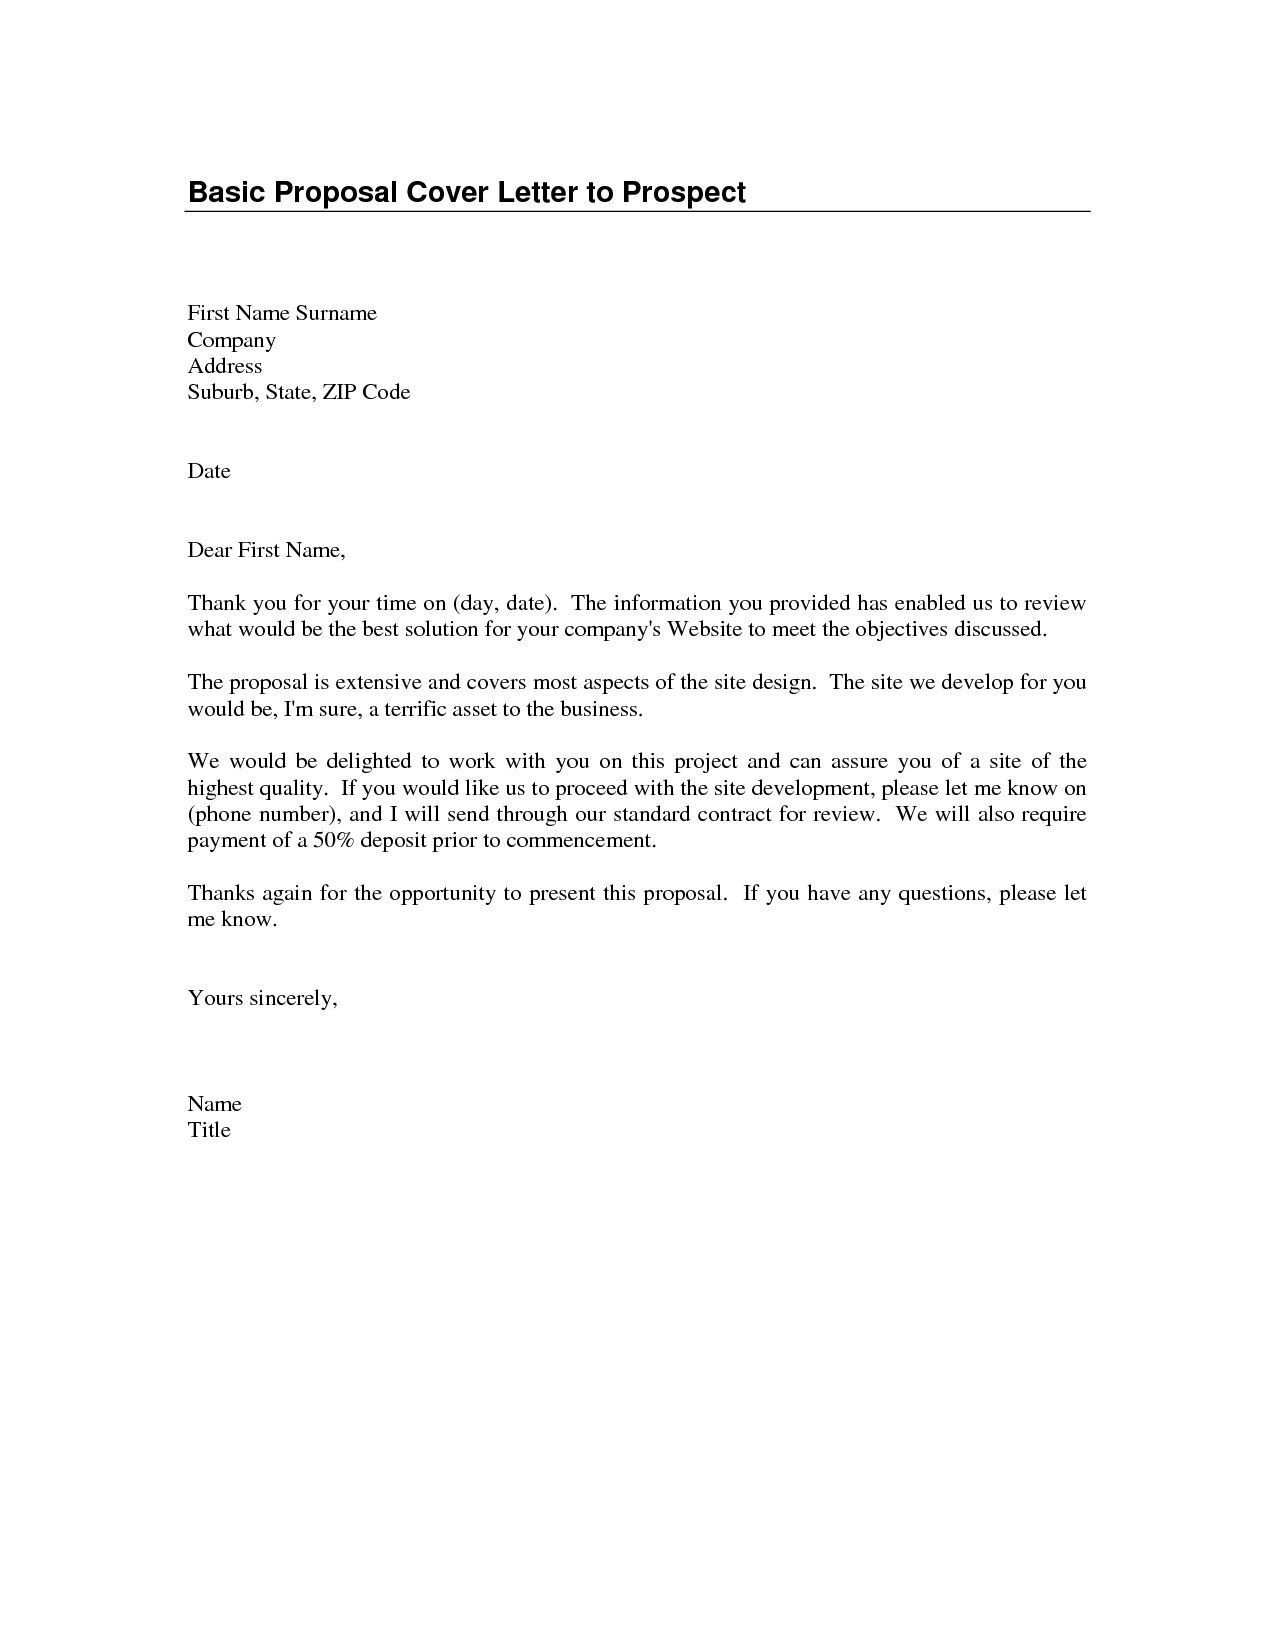 49916bc88f948fa005910b224be7975c Quick Cover Letter Templates on free professional, microsoft office, to write, sample email, for fax, just basic, google docs,